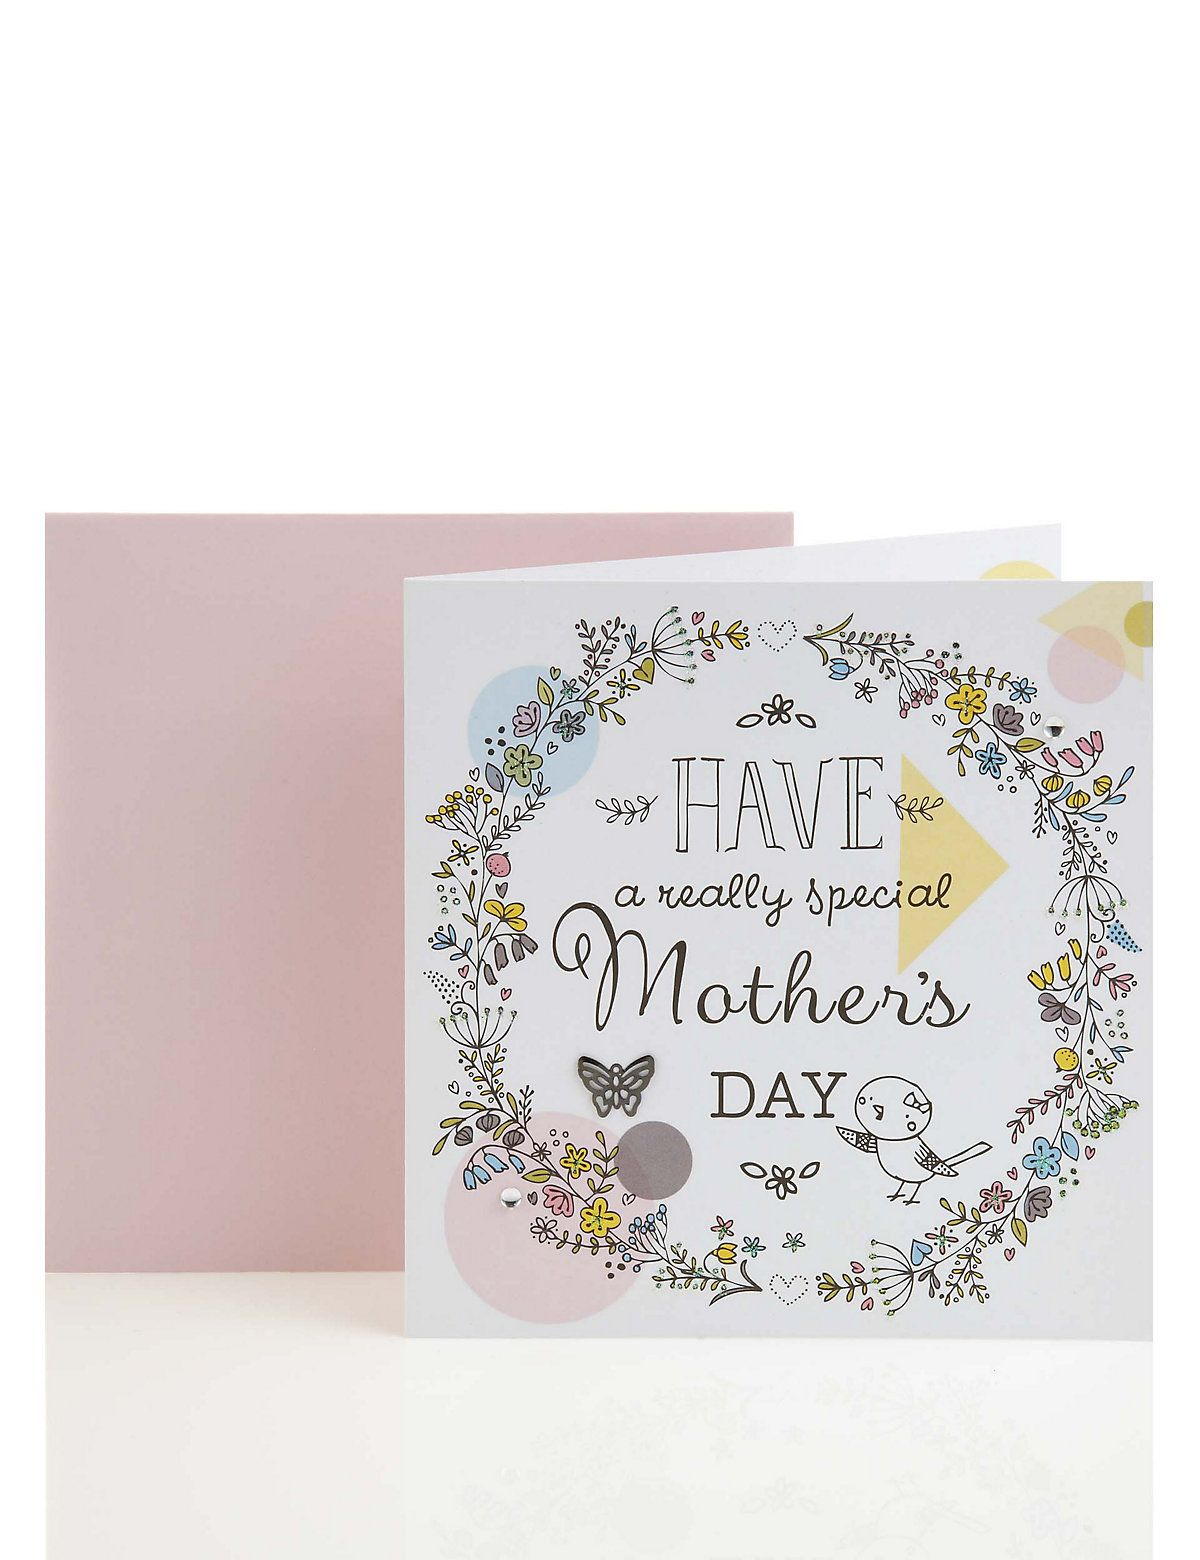 Cute floral mothers day card ms design paper goods cute floral mothers day card ms kristyandbryce Image collections